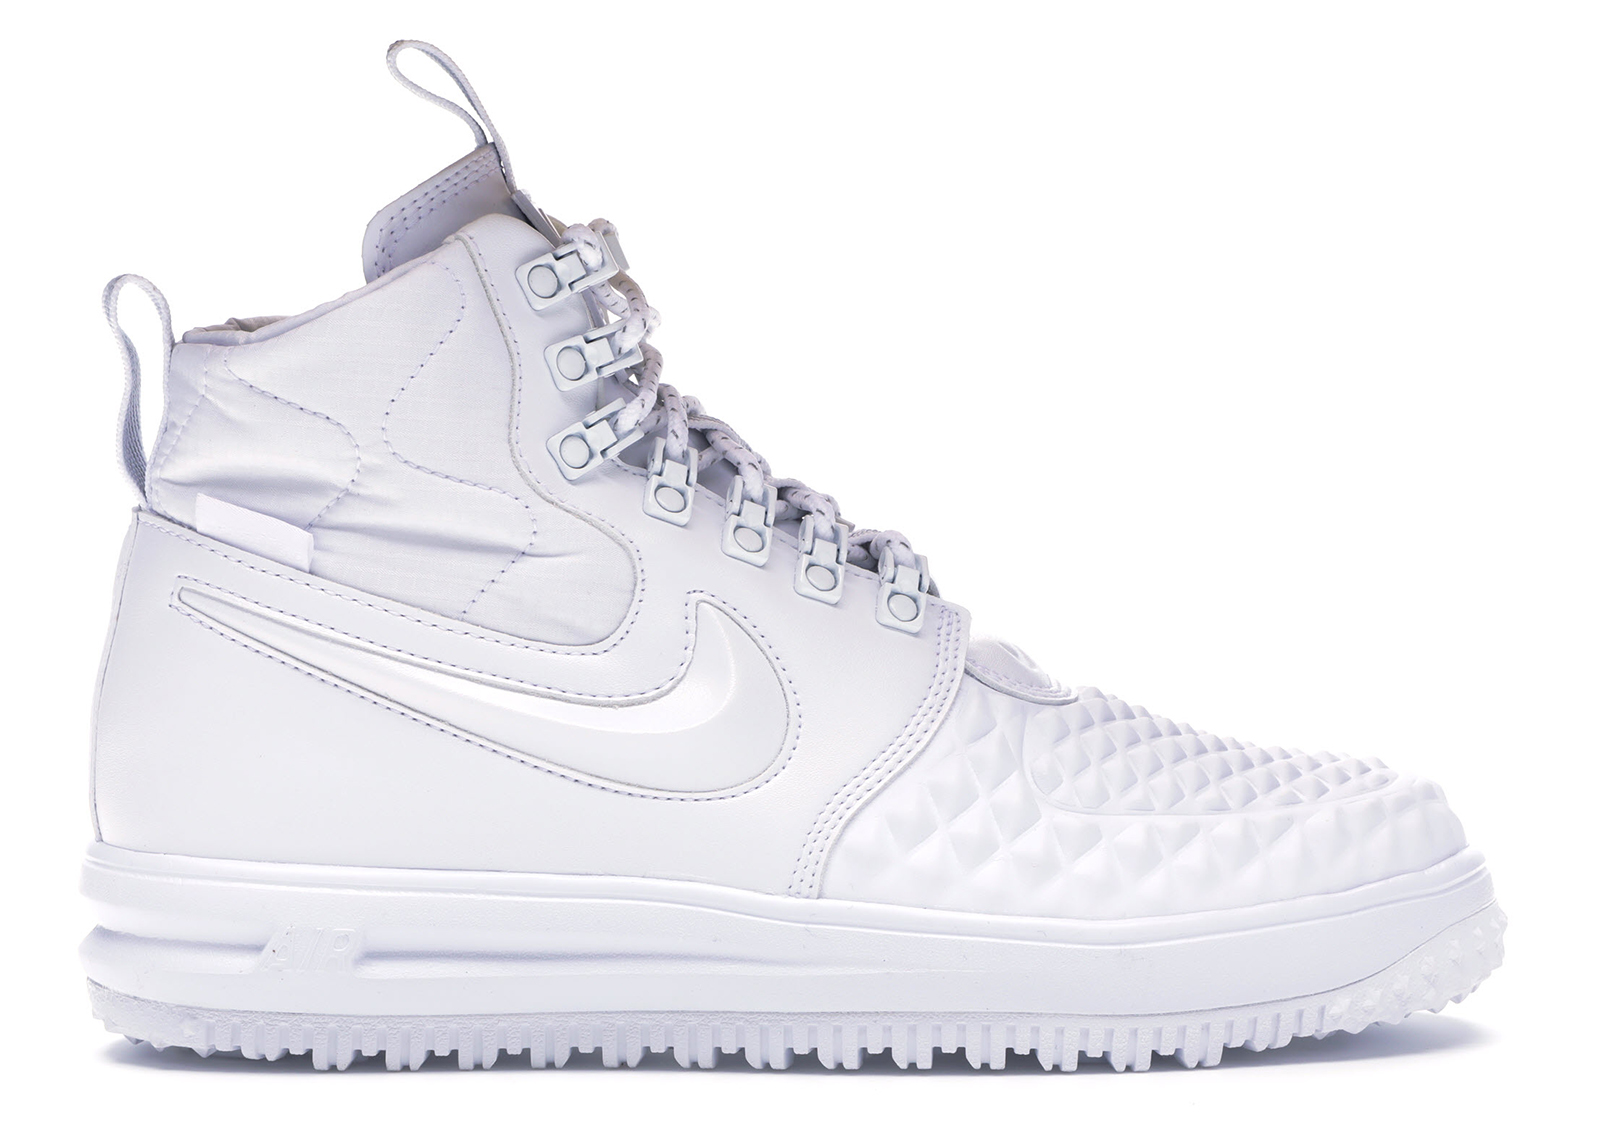 Force Winter Lunar Nike 1 White Duckboot R34jq5AL